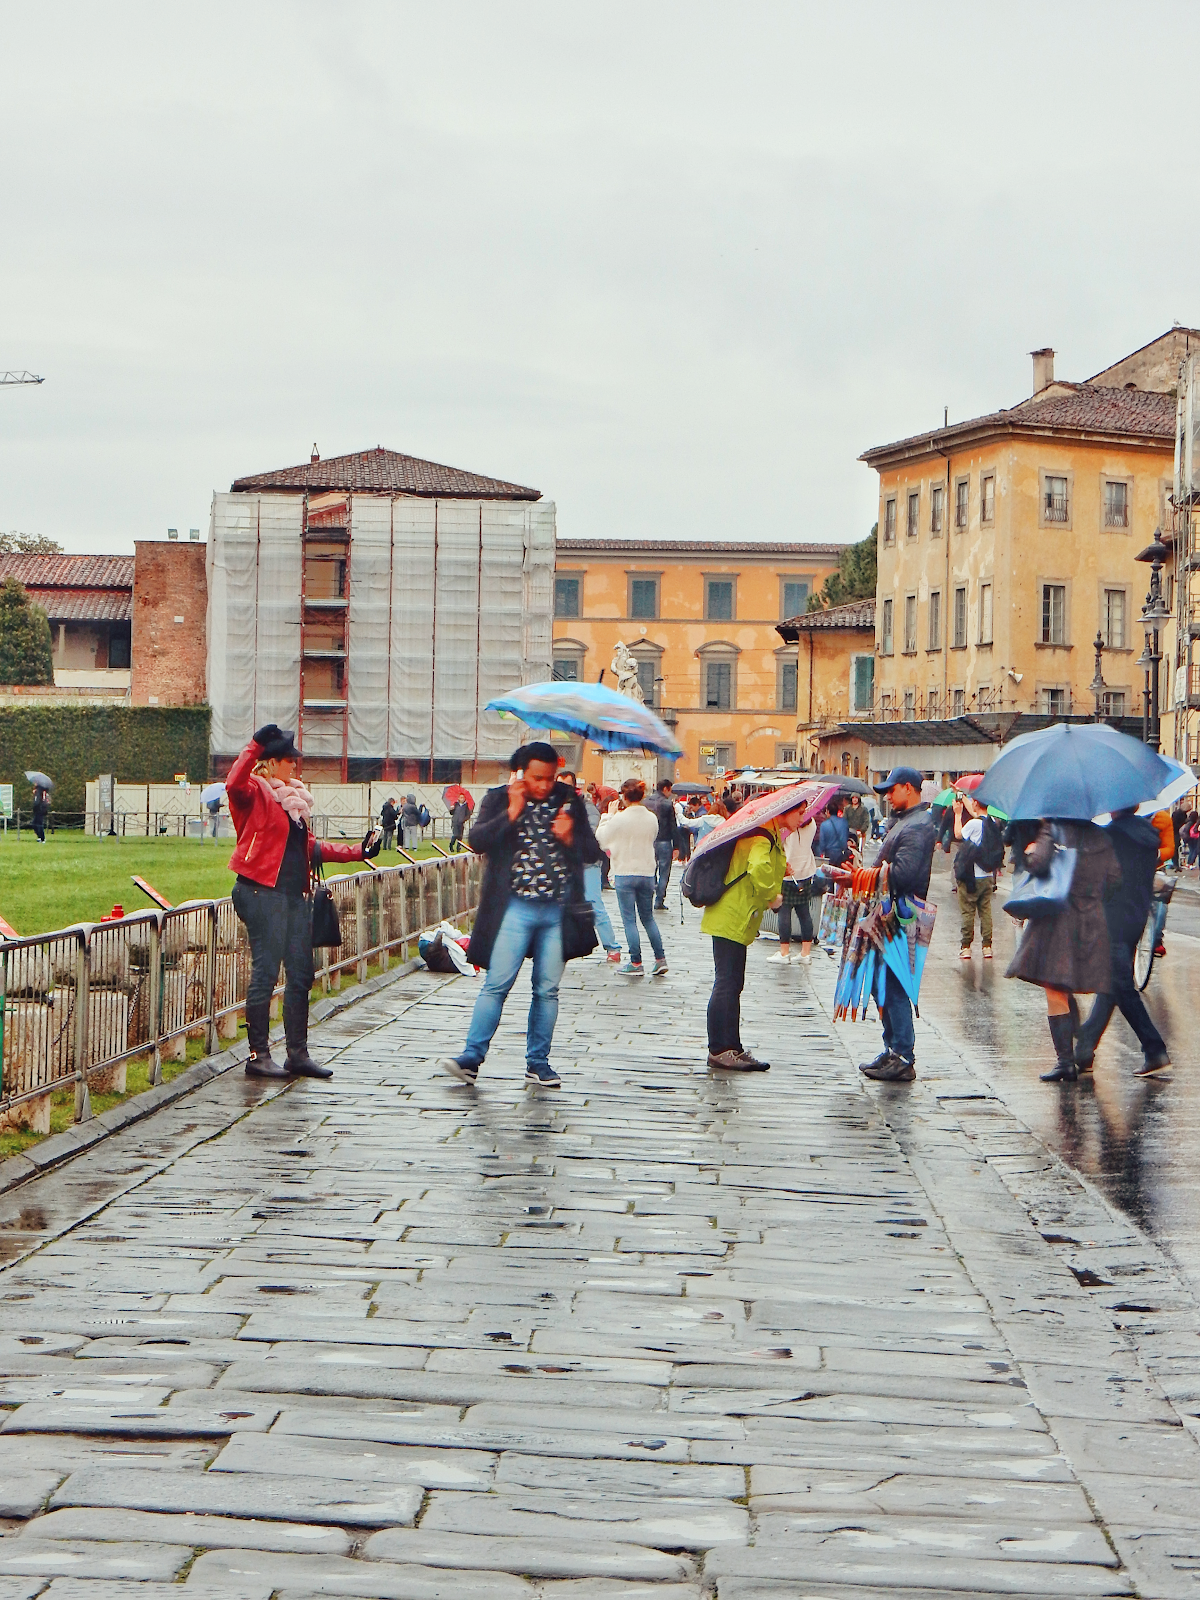 sightseeing in pisa italy